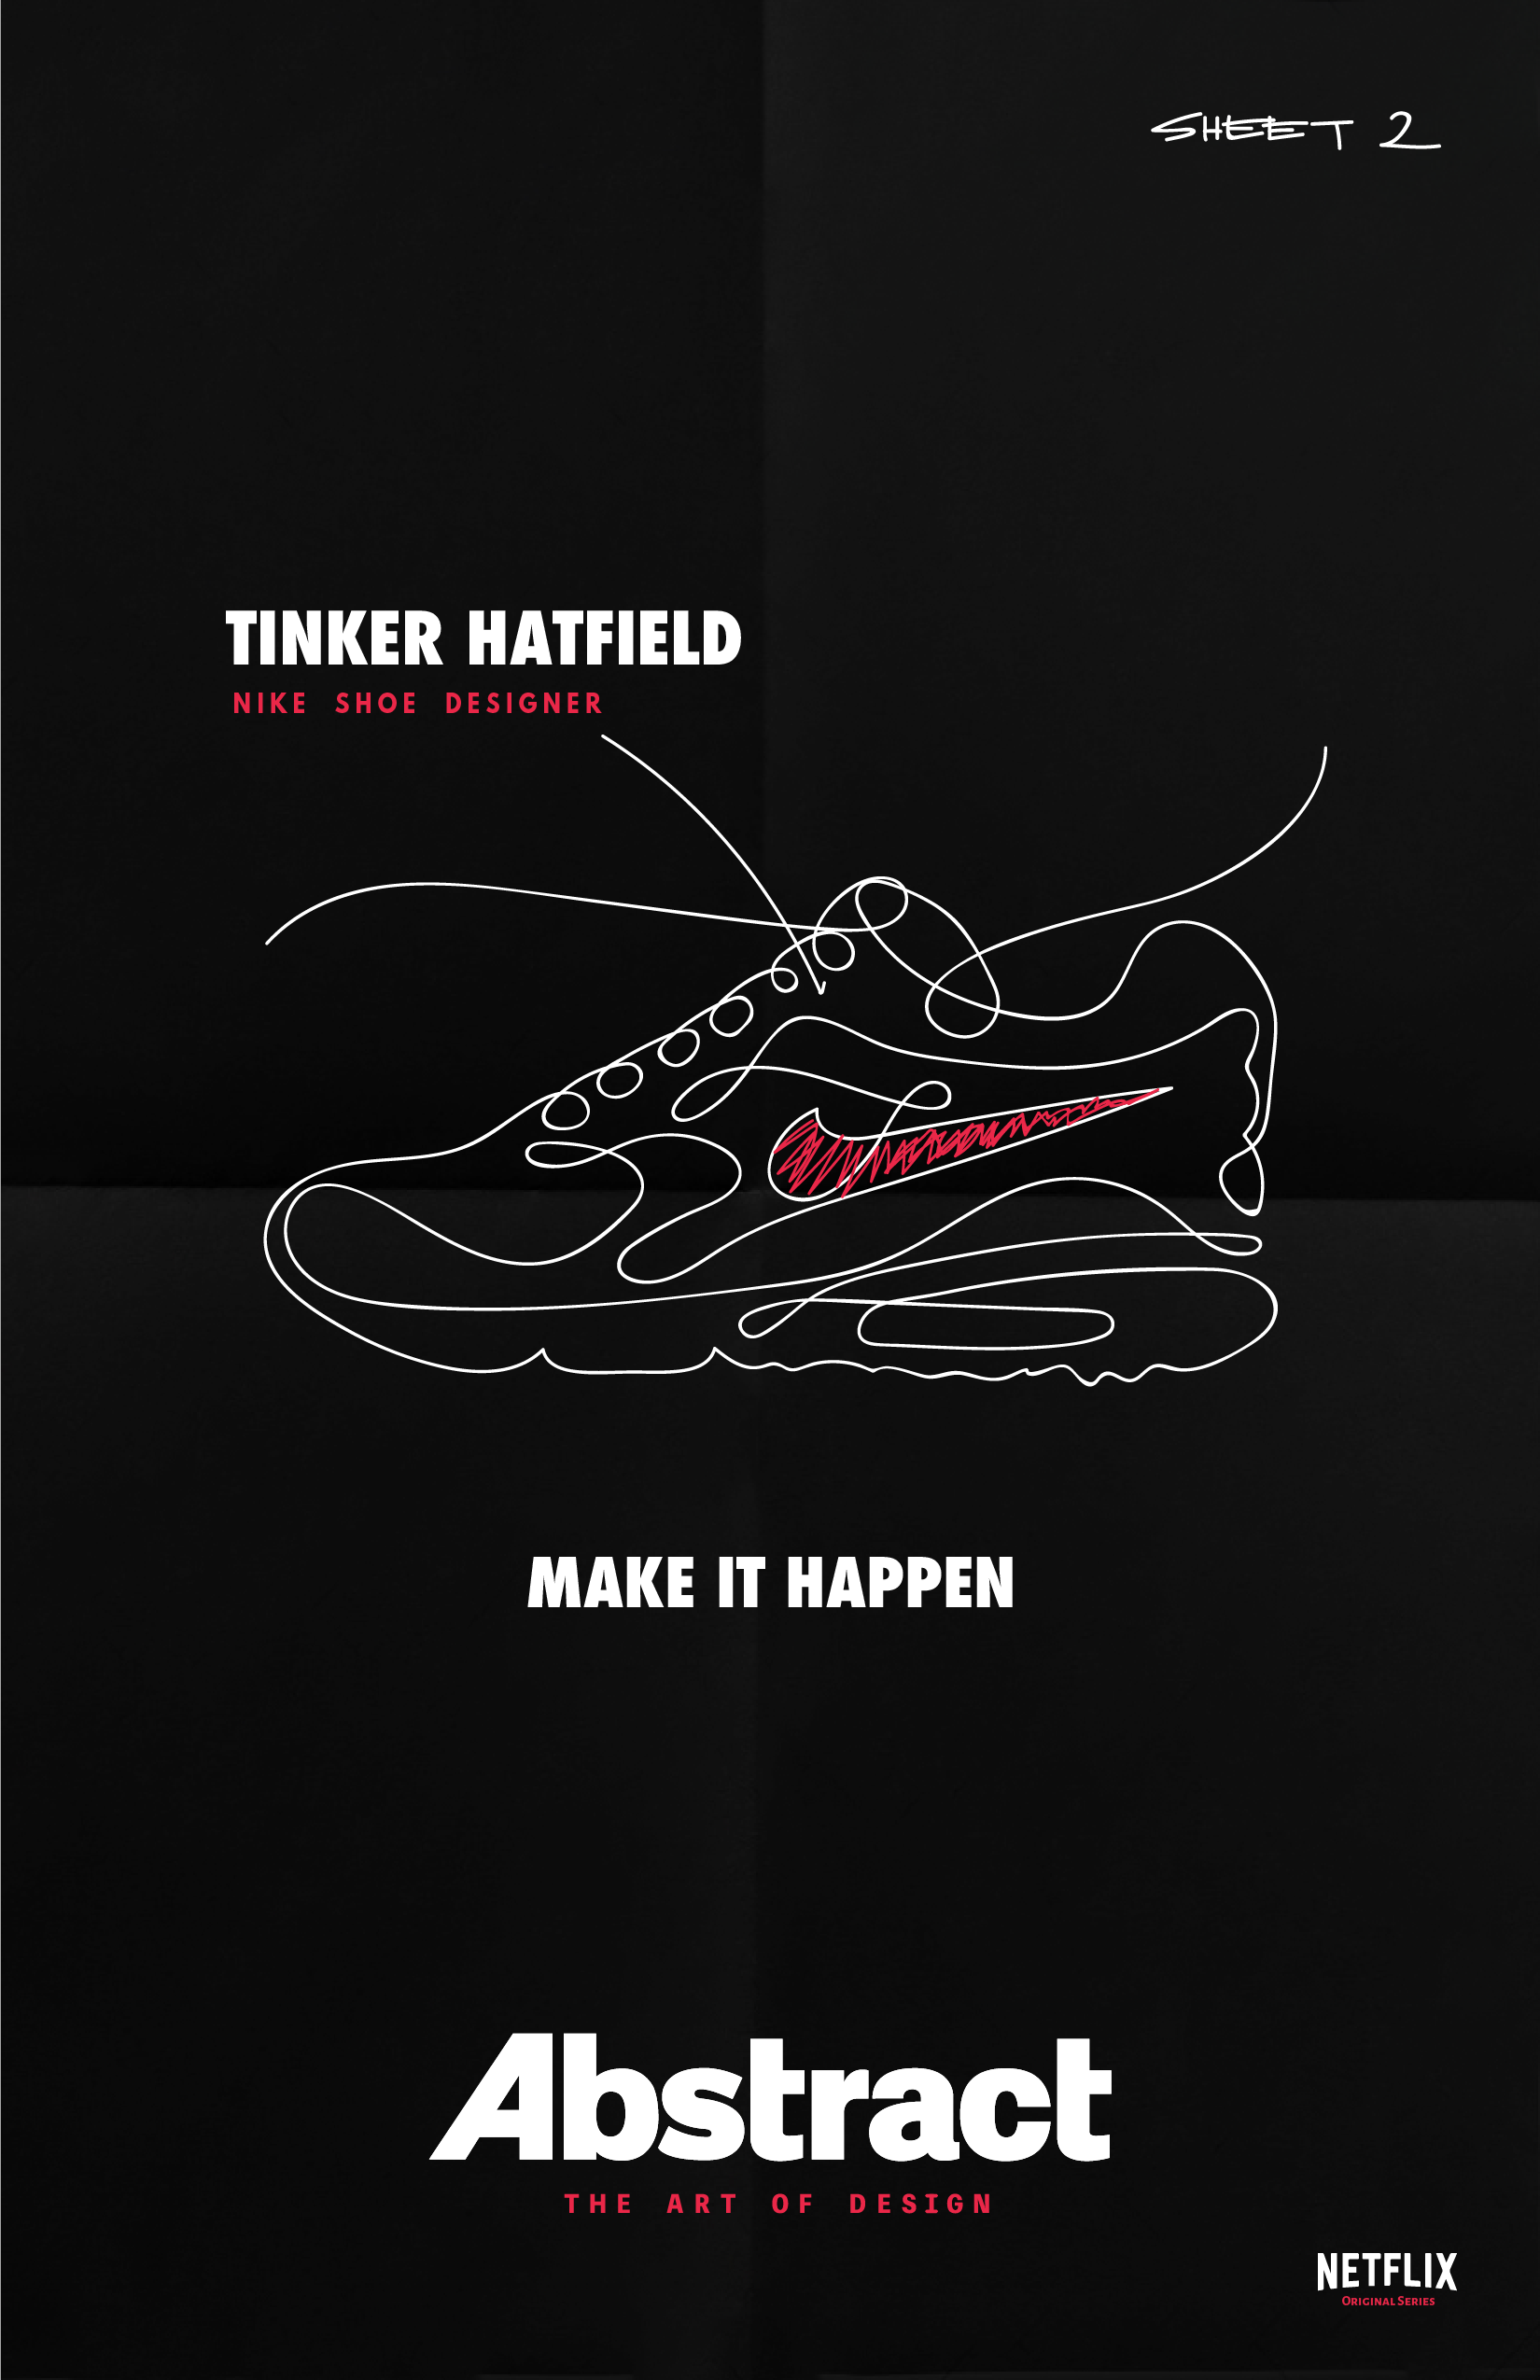 Abstract the Art of Design Minimalist Poster Tinker Hatfield - Nike Shoe  Designer Chapter 2